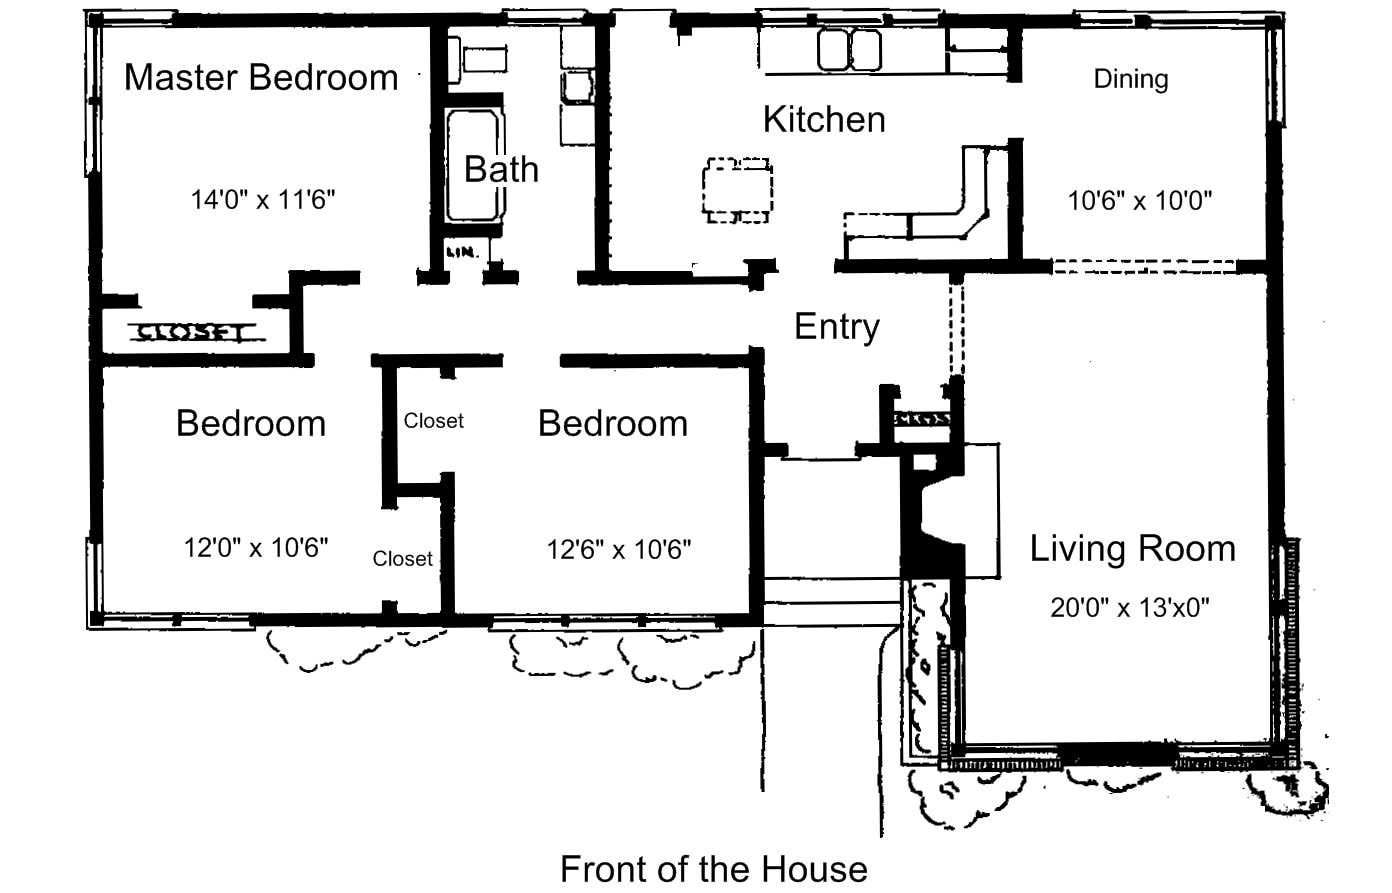 Free floor plans for small houses small house plans smallest house and tiny houses Make a house blueprint online free